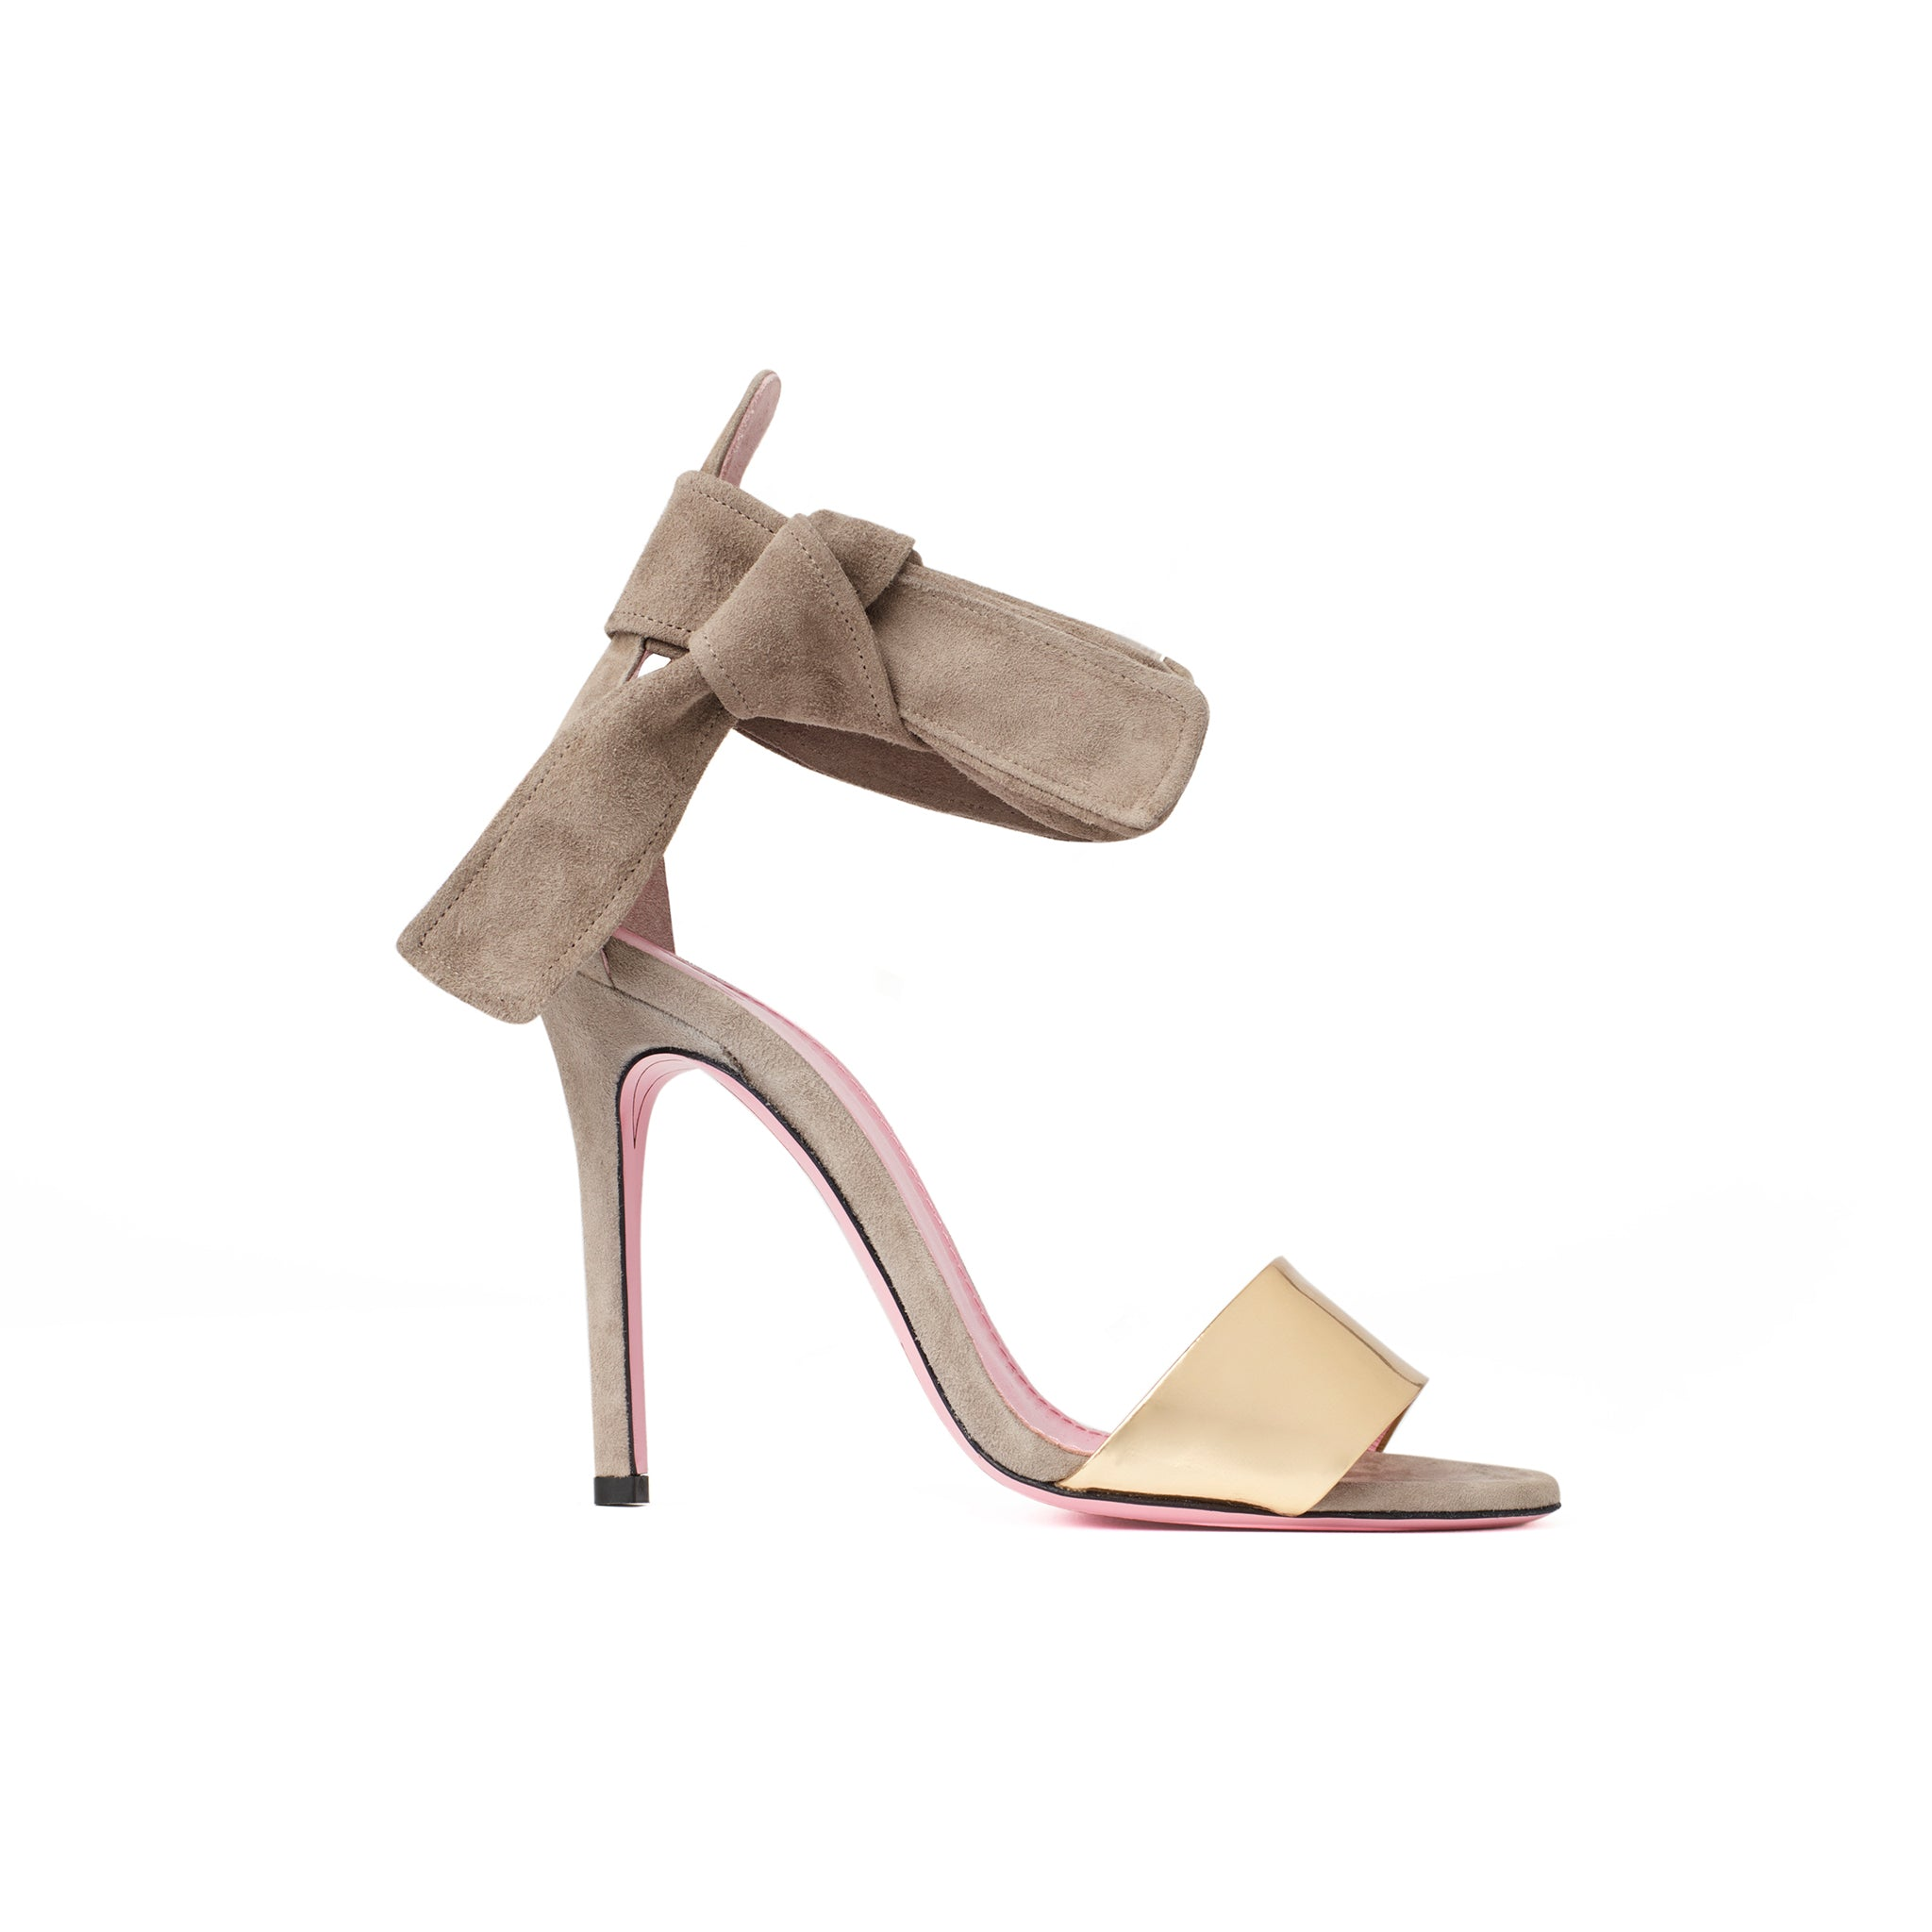 Phare Ankle tie stiletto in taupe suede